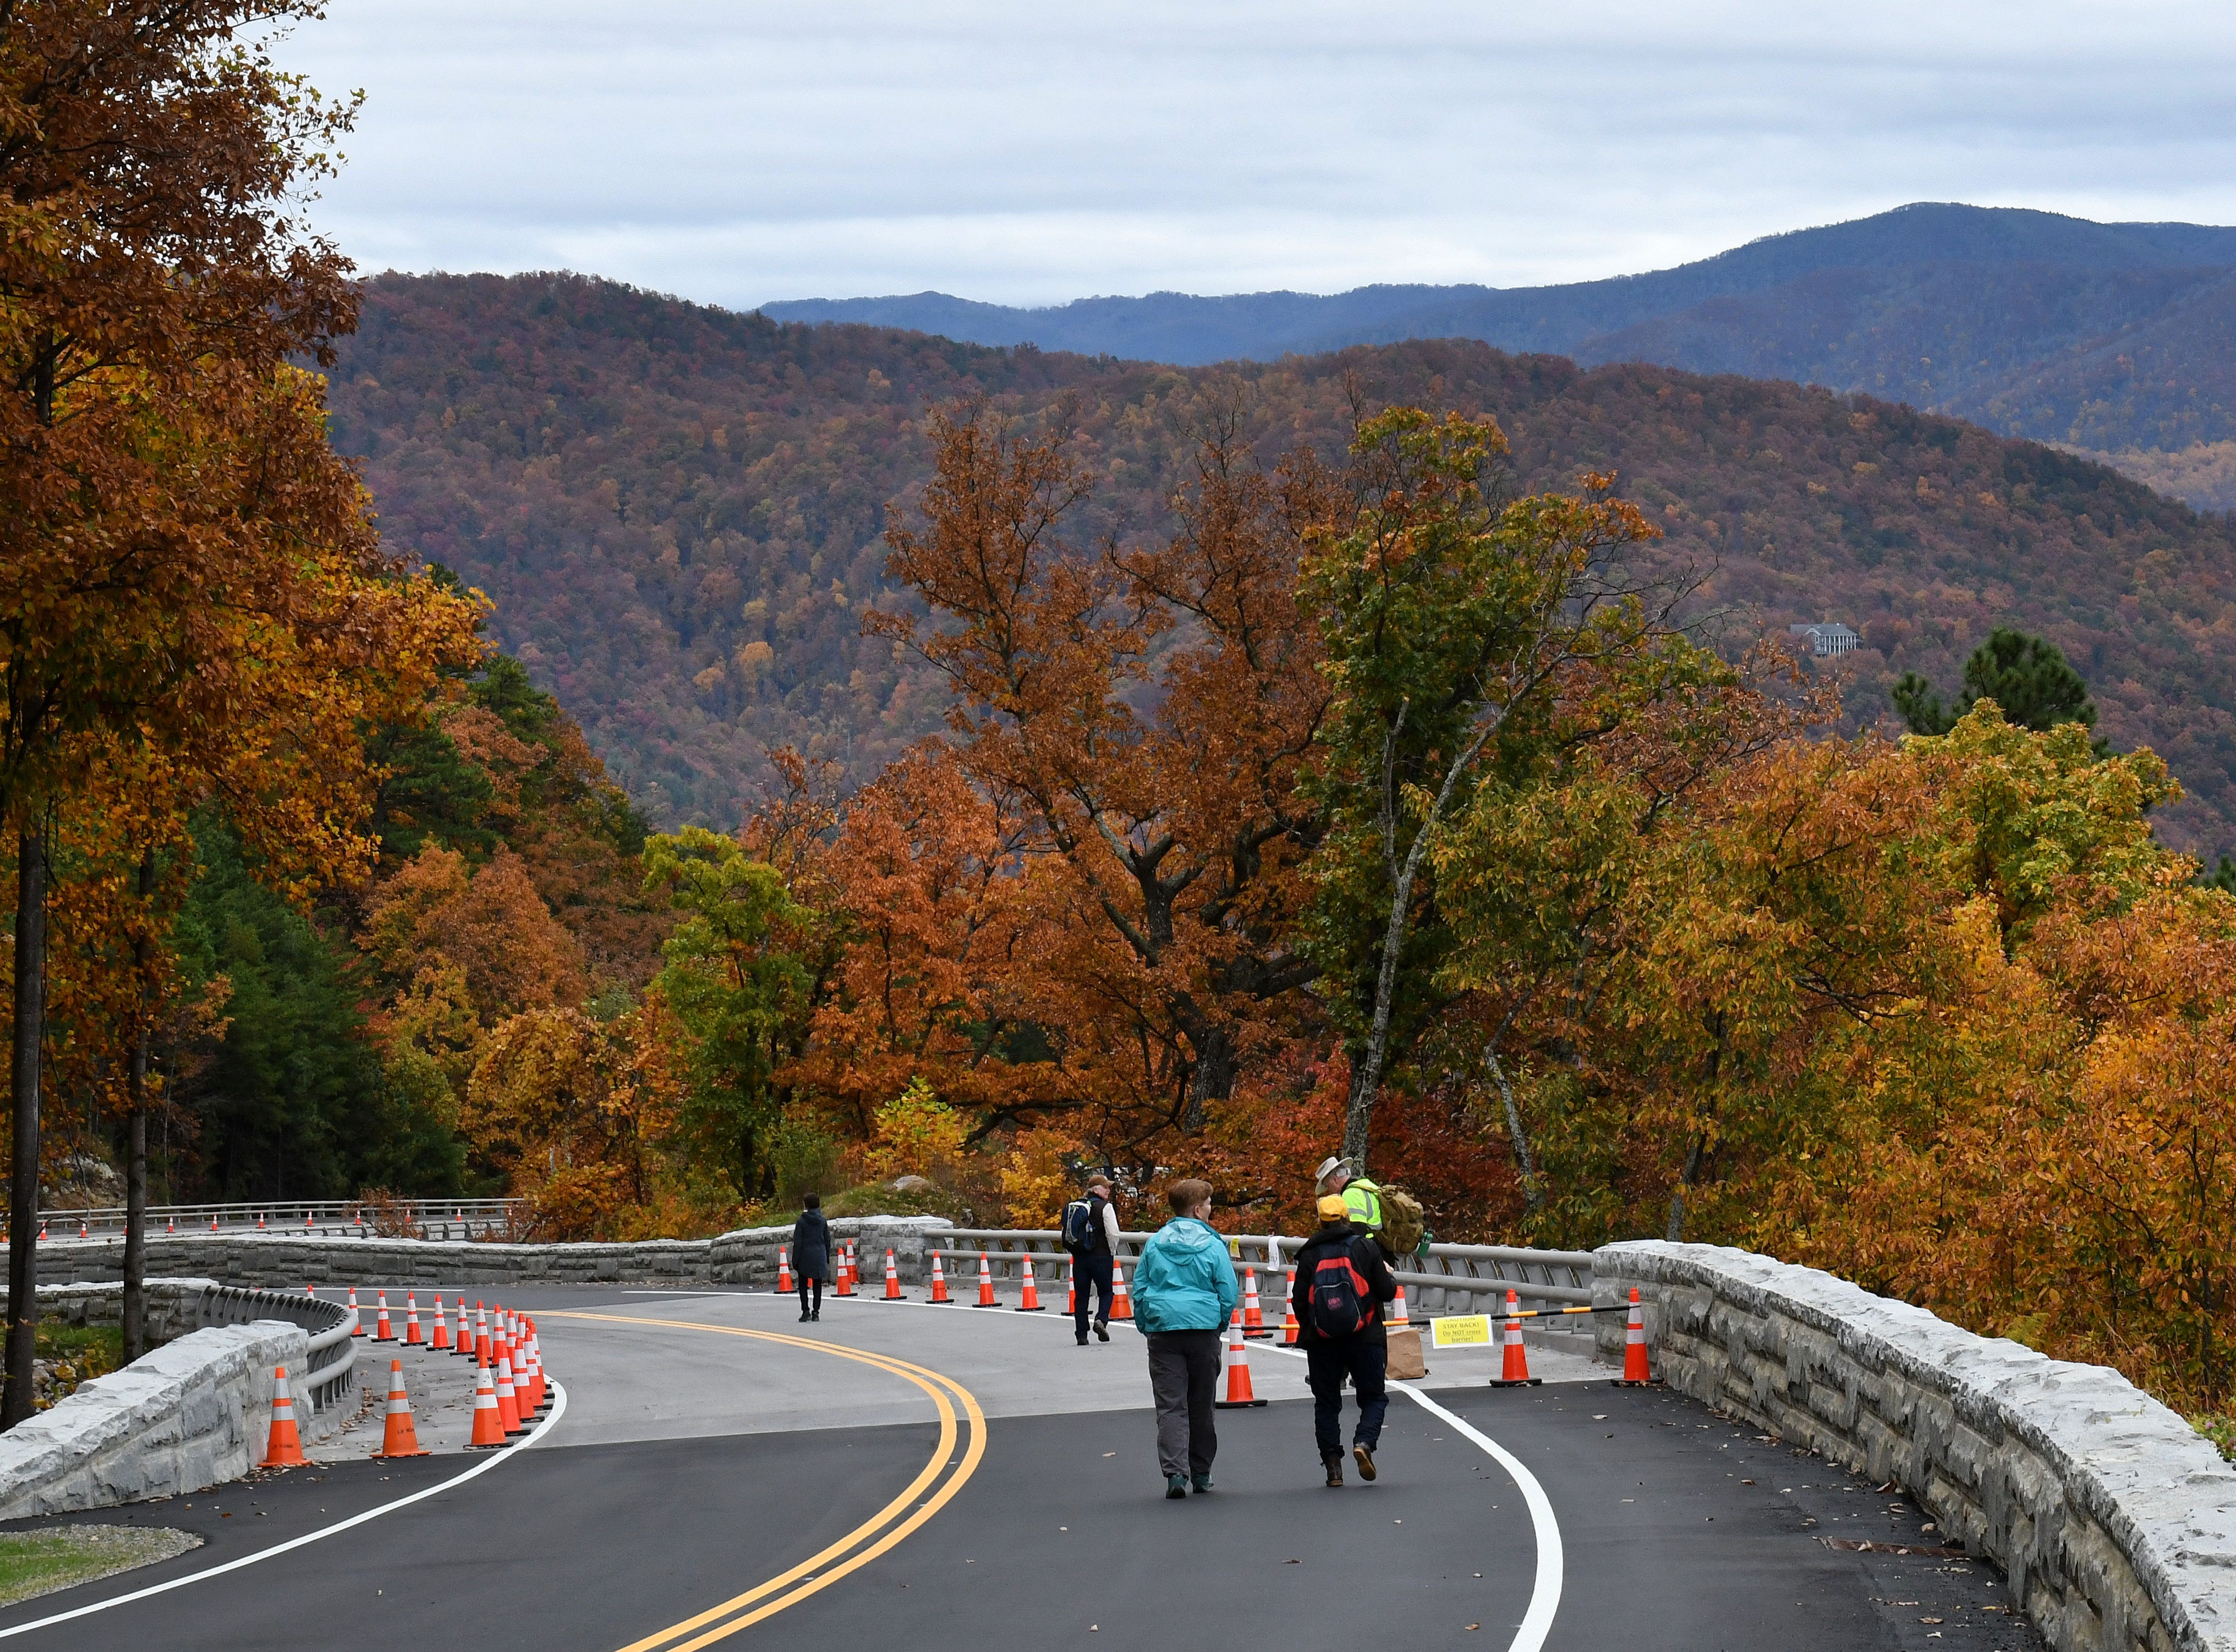 National Park Service held a Community Day Thursday, Nov. 8, 2018 for the public to experience the bridges along the 1.65-mile section known as the 'Missing Link' before it opens to motorists and cyclists Saturday.